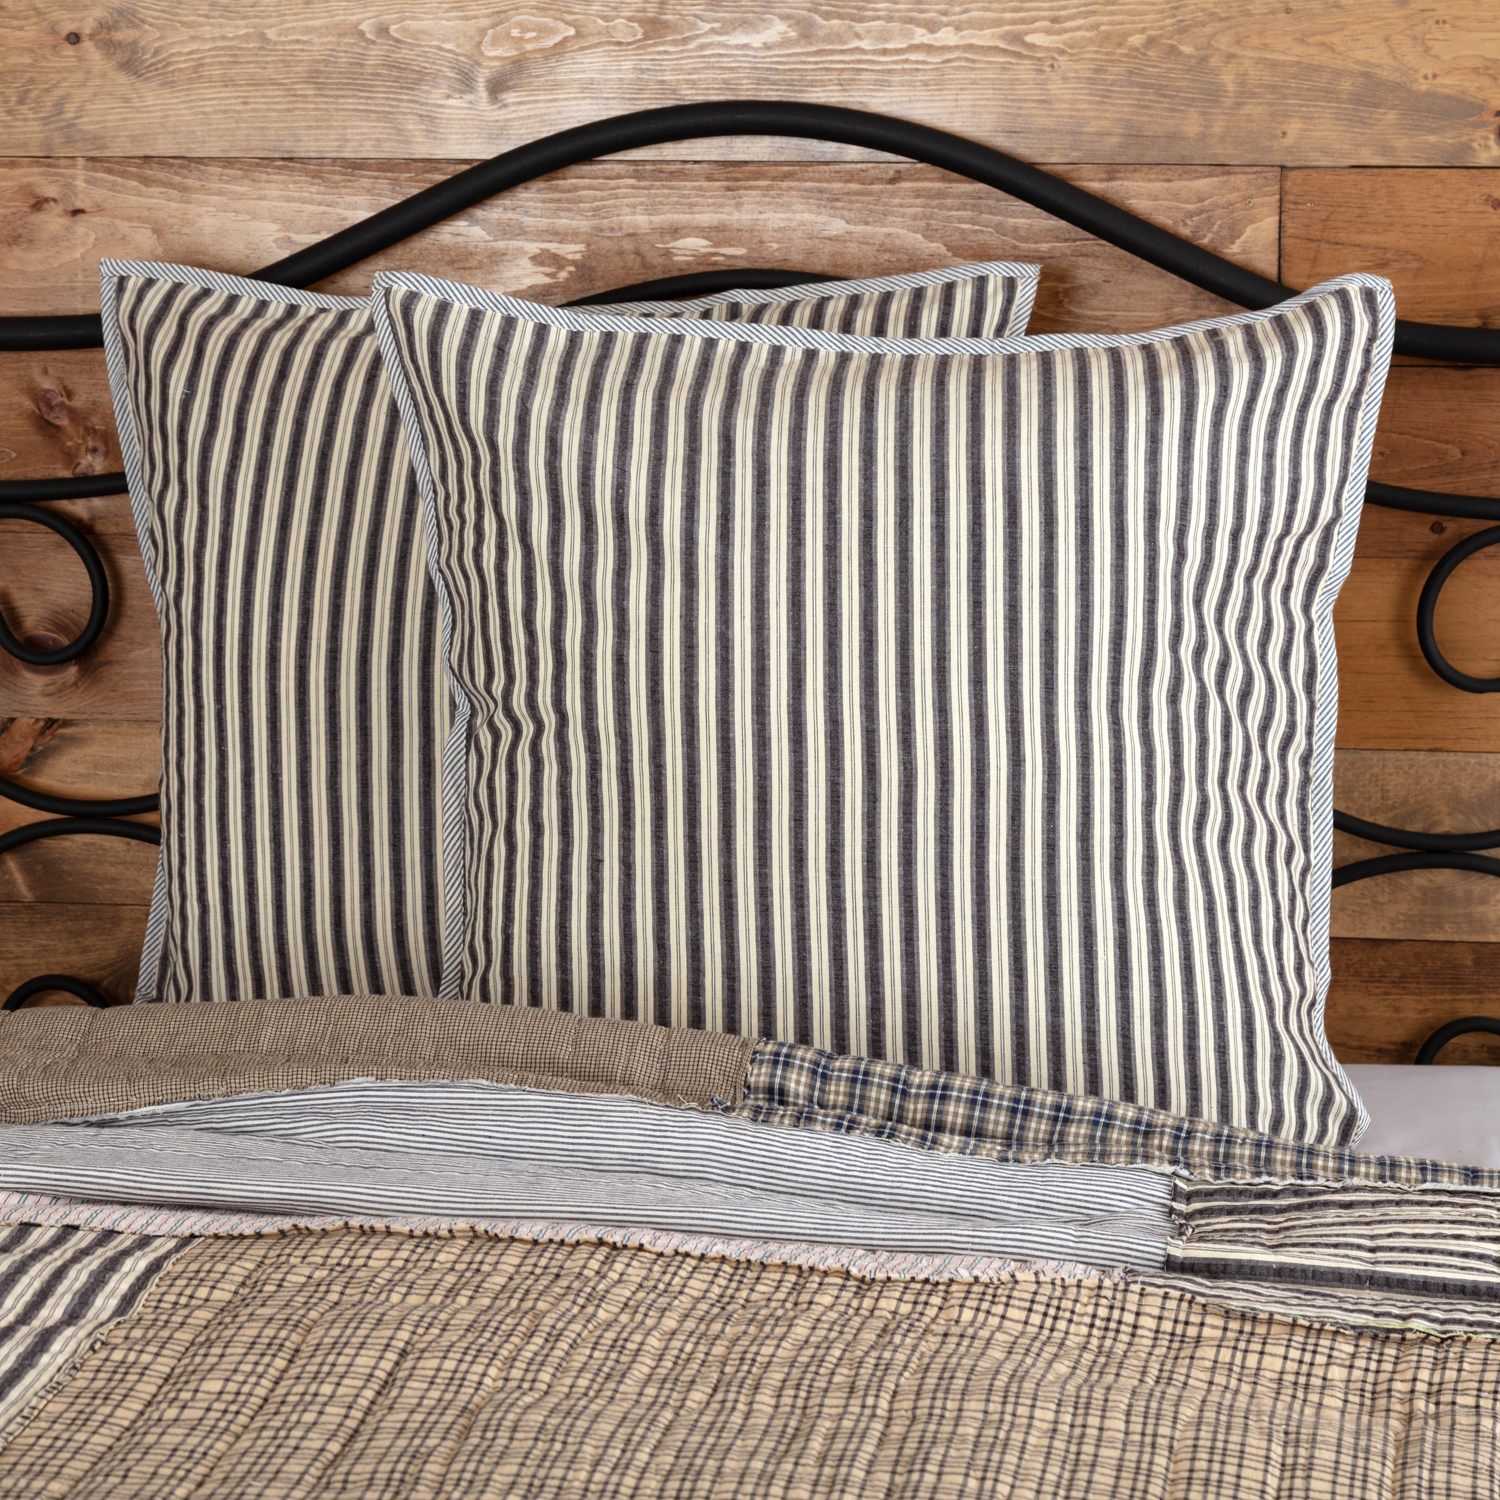 Charcoal Grey Farmhouse Bedding Ashmont Cotton Seersucker Striped Euro Sham